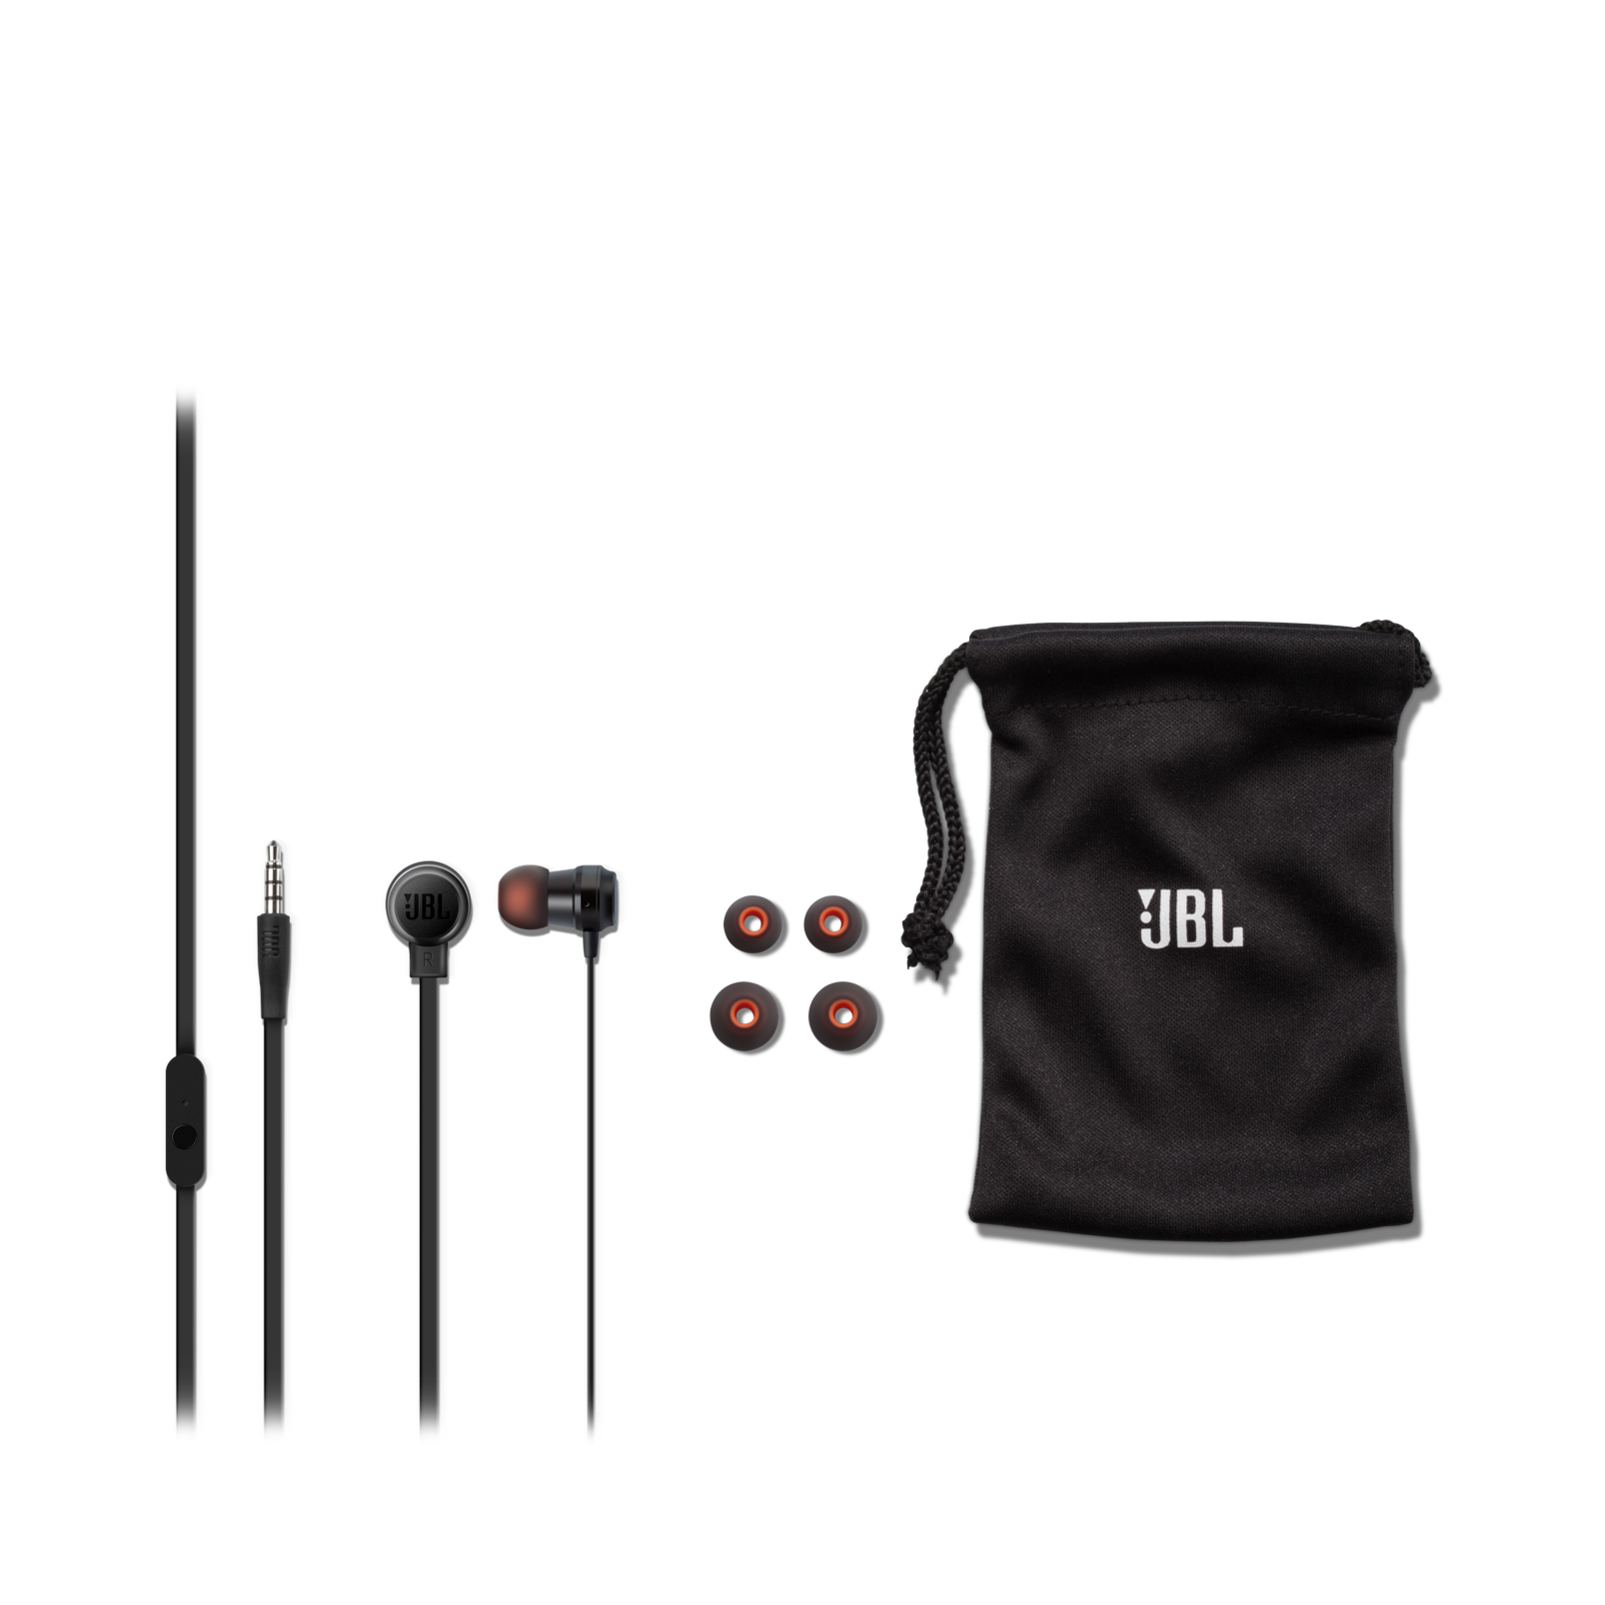 JBL T280A - Black - In-ear headphones with high performance drivers - Detailshot 2